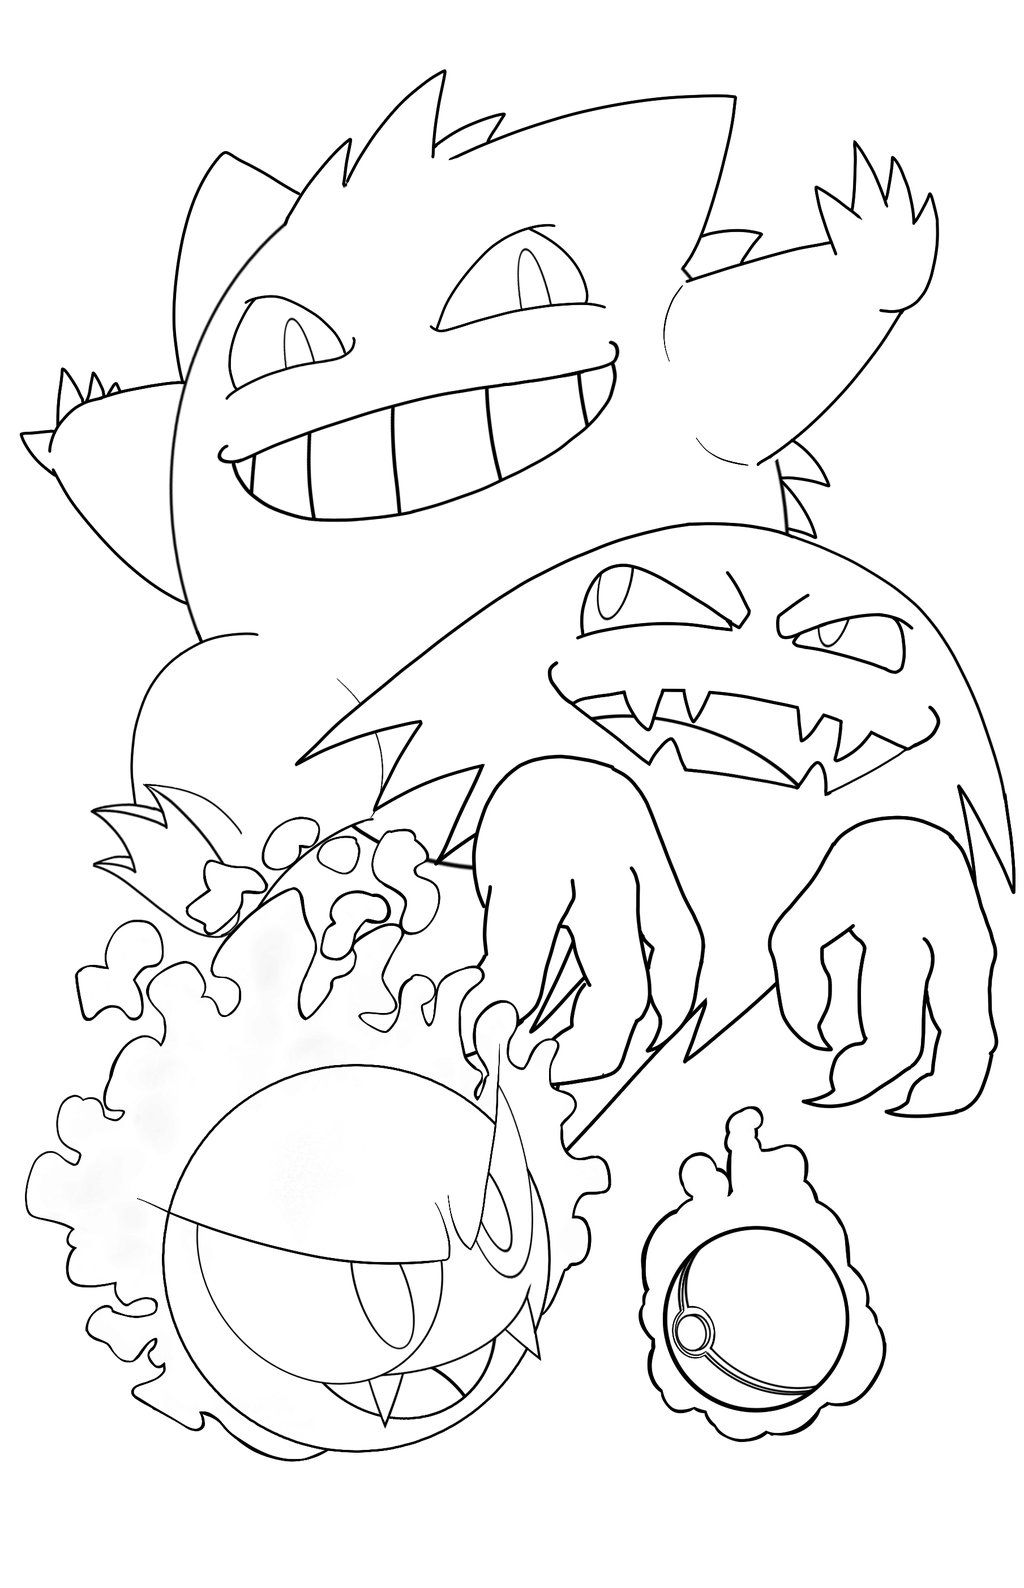 Gastly Evolution Line Art By Semajz Line Art Art Pokemon